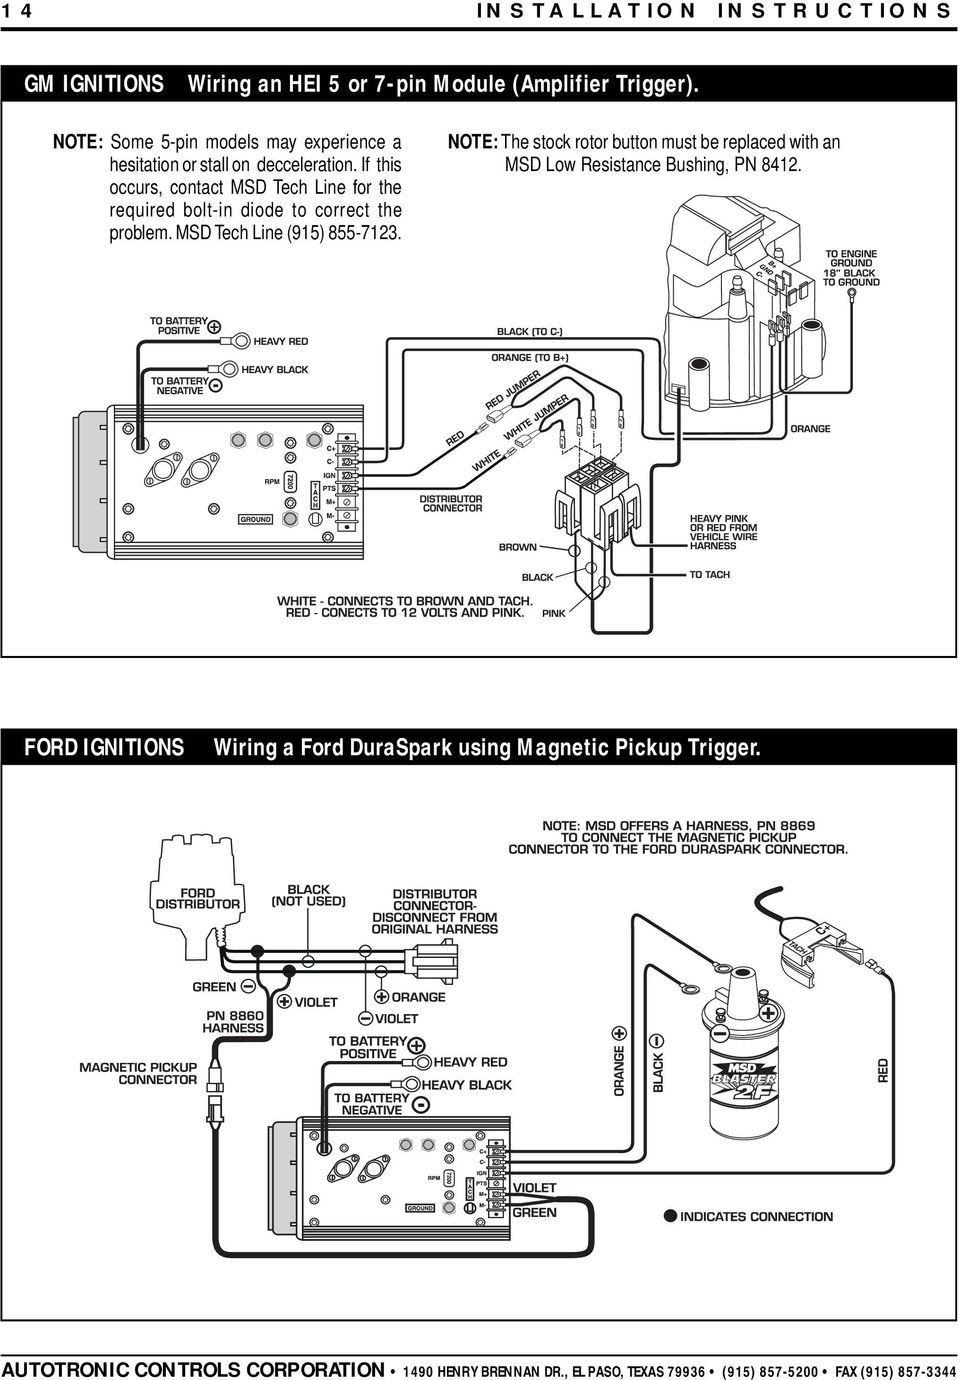 Msd 7al 2 Ignition Pn 7220 7224 7226 Pdf Wiring 6 Into 1978 Ford If This Occurs Contact Tech Line For The Required Bolt In Diode To 15 Installation Instructions